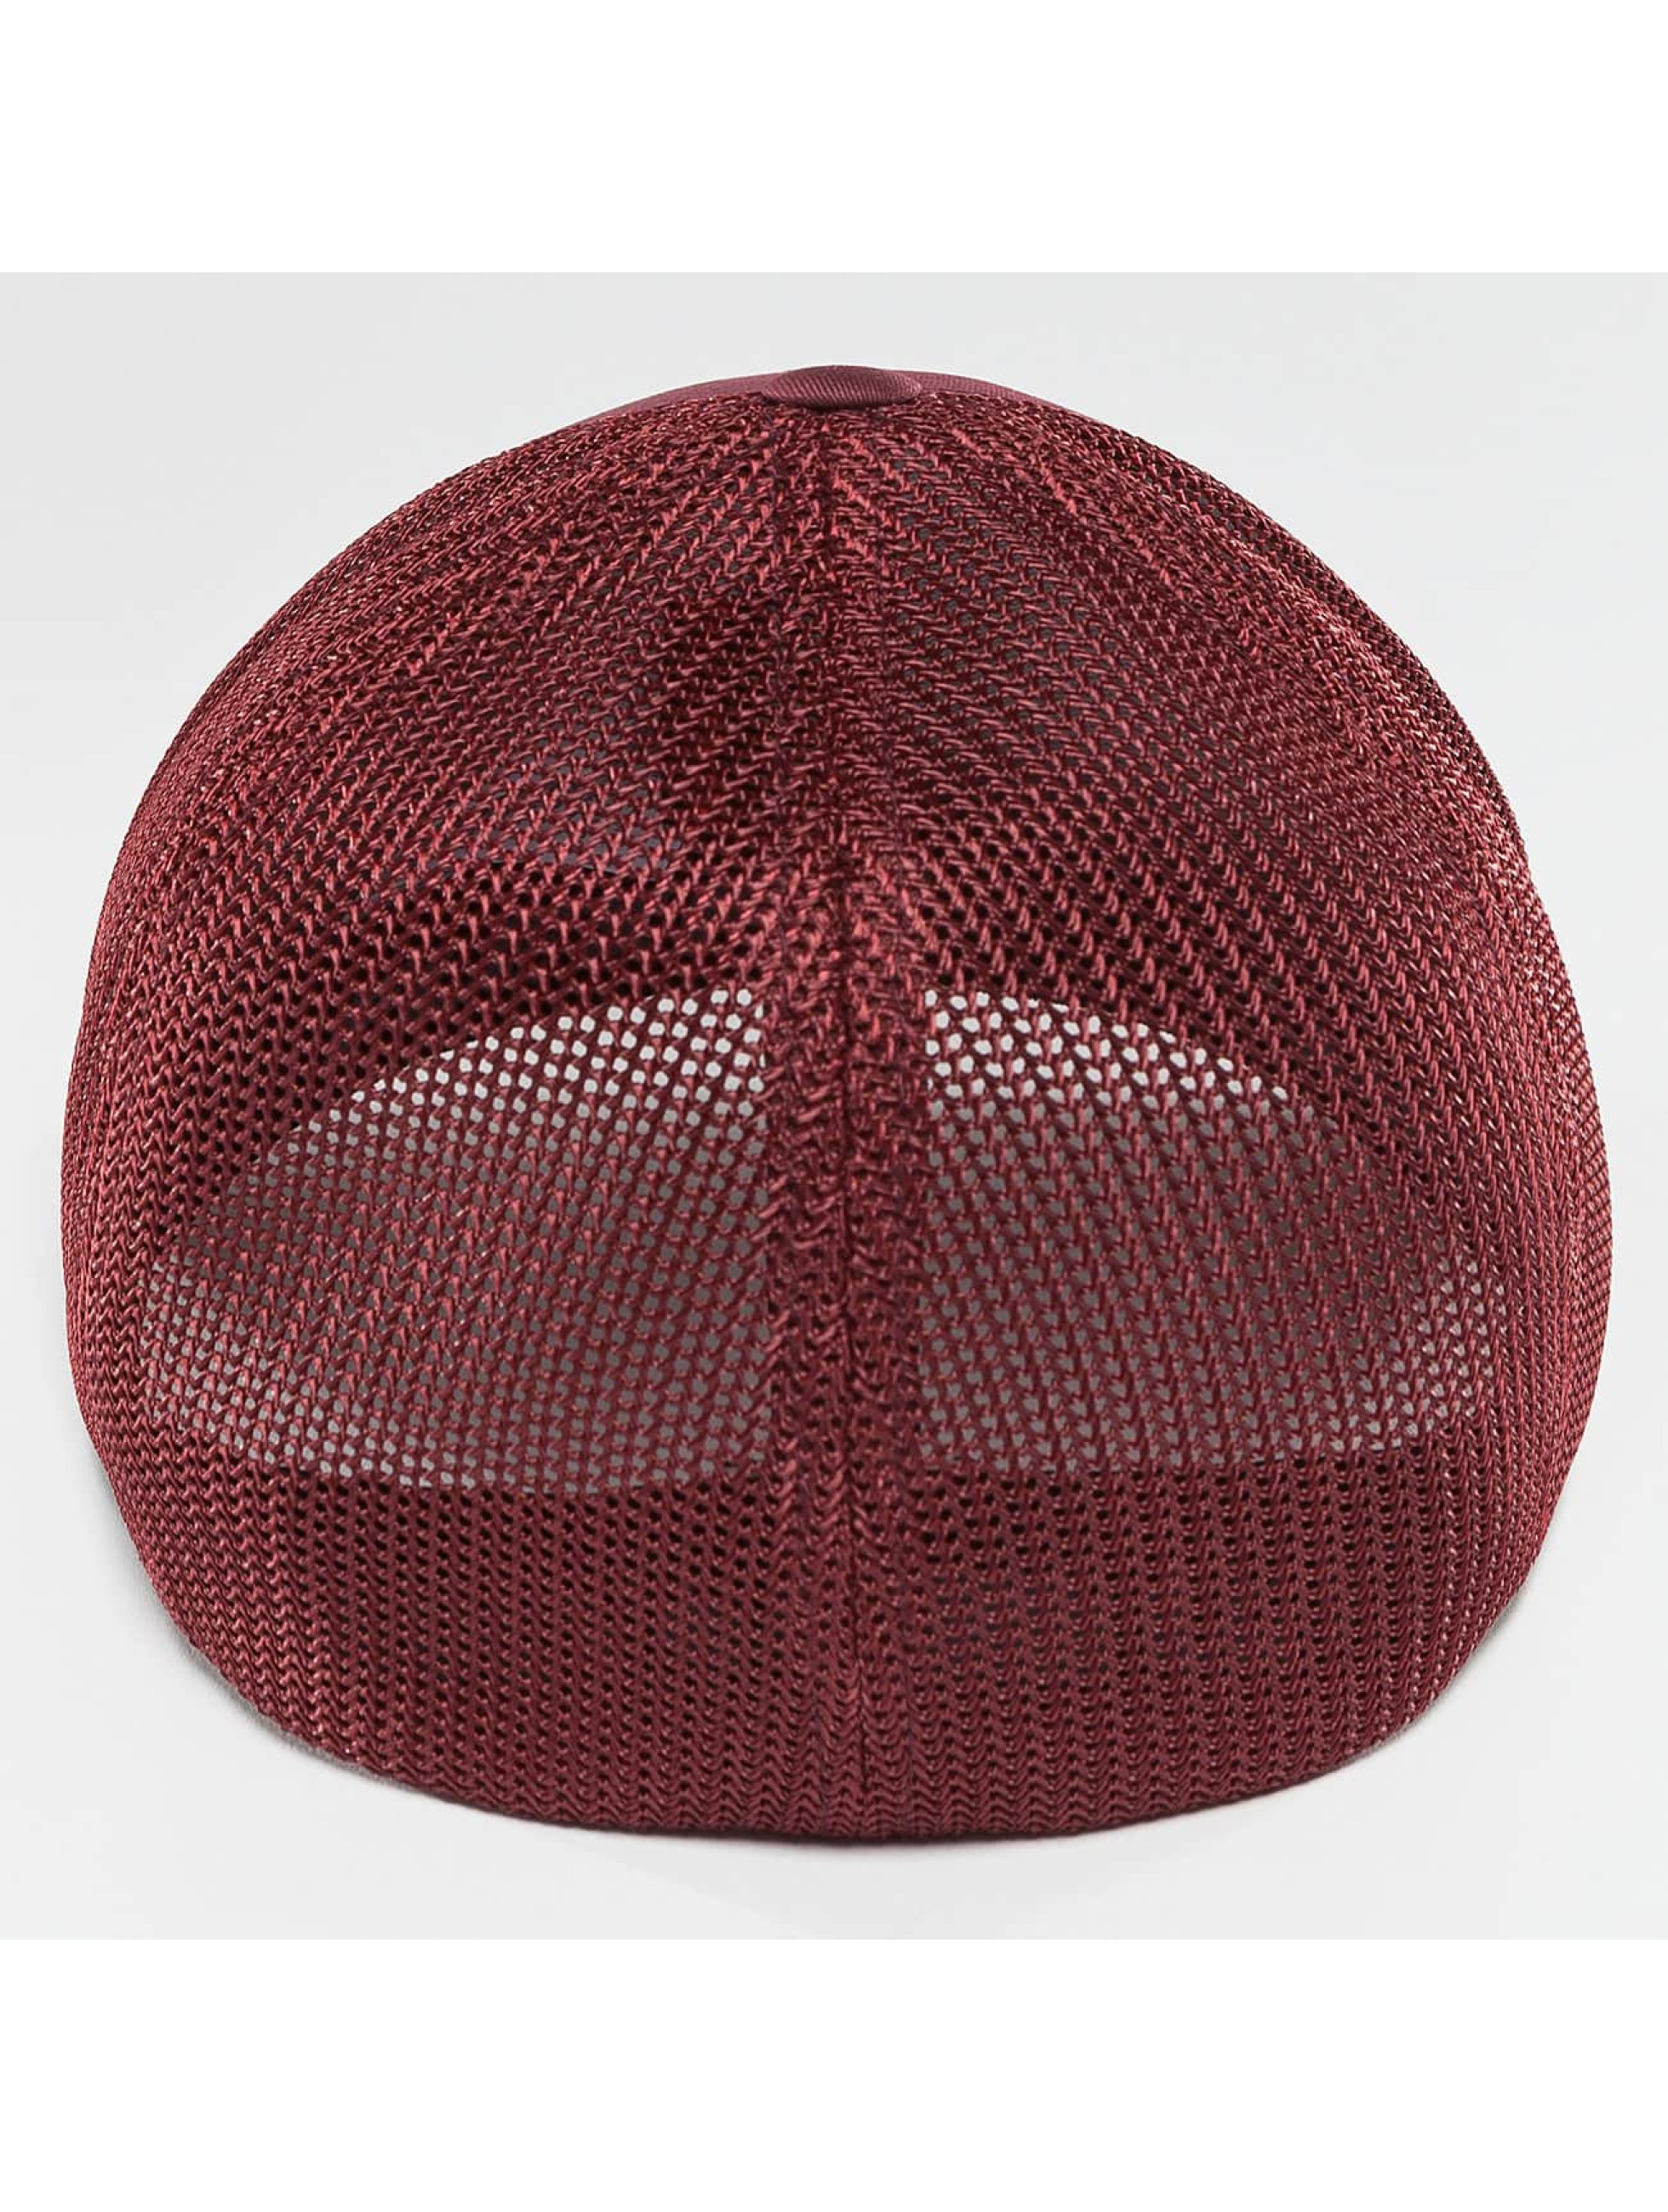 Flexfit Flexfitted Cap Mesh Cotton Twill red